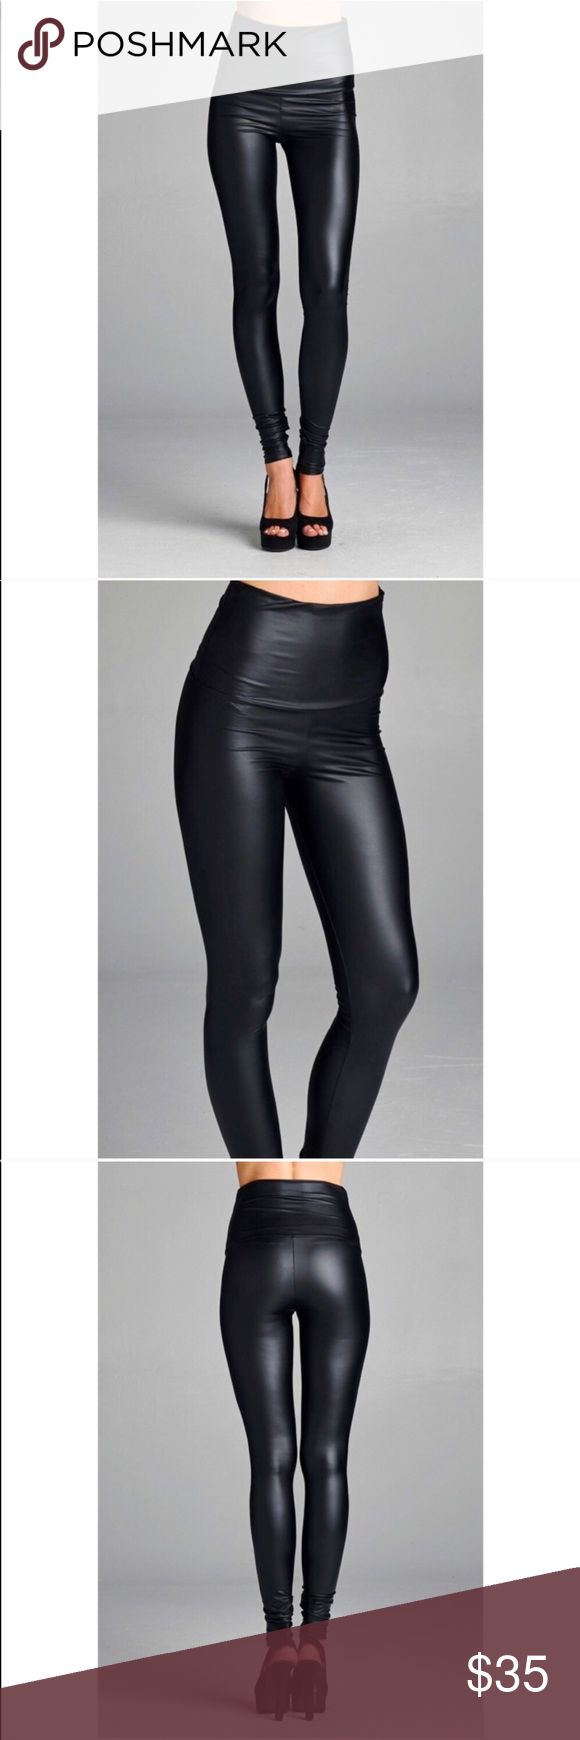 RESTOCKED!! High Waisted Vegan Leather Leggings Fitted vegan leather legging. Can be worn high waisted or folded over. This legging is made with medium weight vegan leather fabric that is semi-matte, stretches extremely well, and is not sheer.  FEEL LIKE MAKING AN OFFER? Please do it through the make an offer feature as I will no longer negotiate prices in the comments section. Hannah Beury Pants Leggings